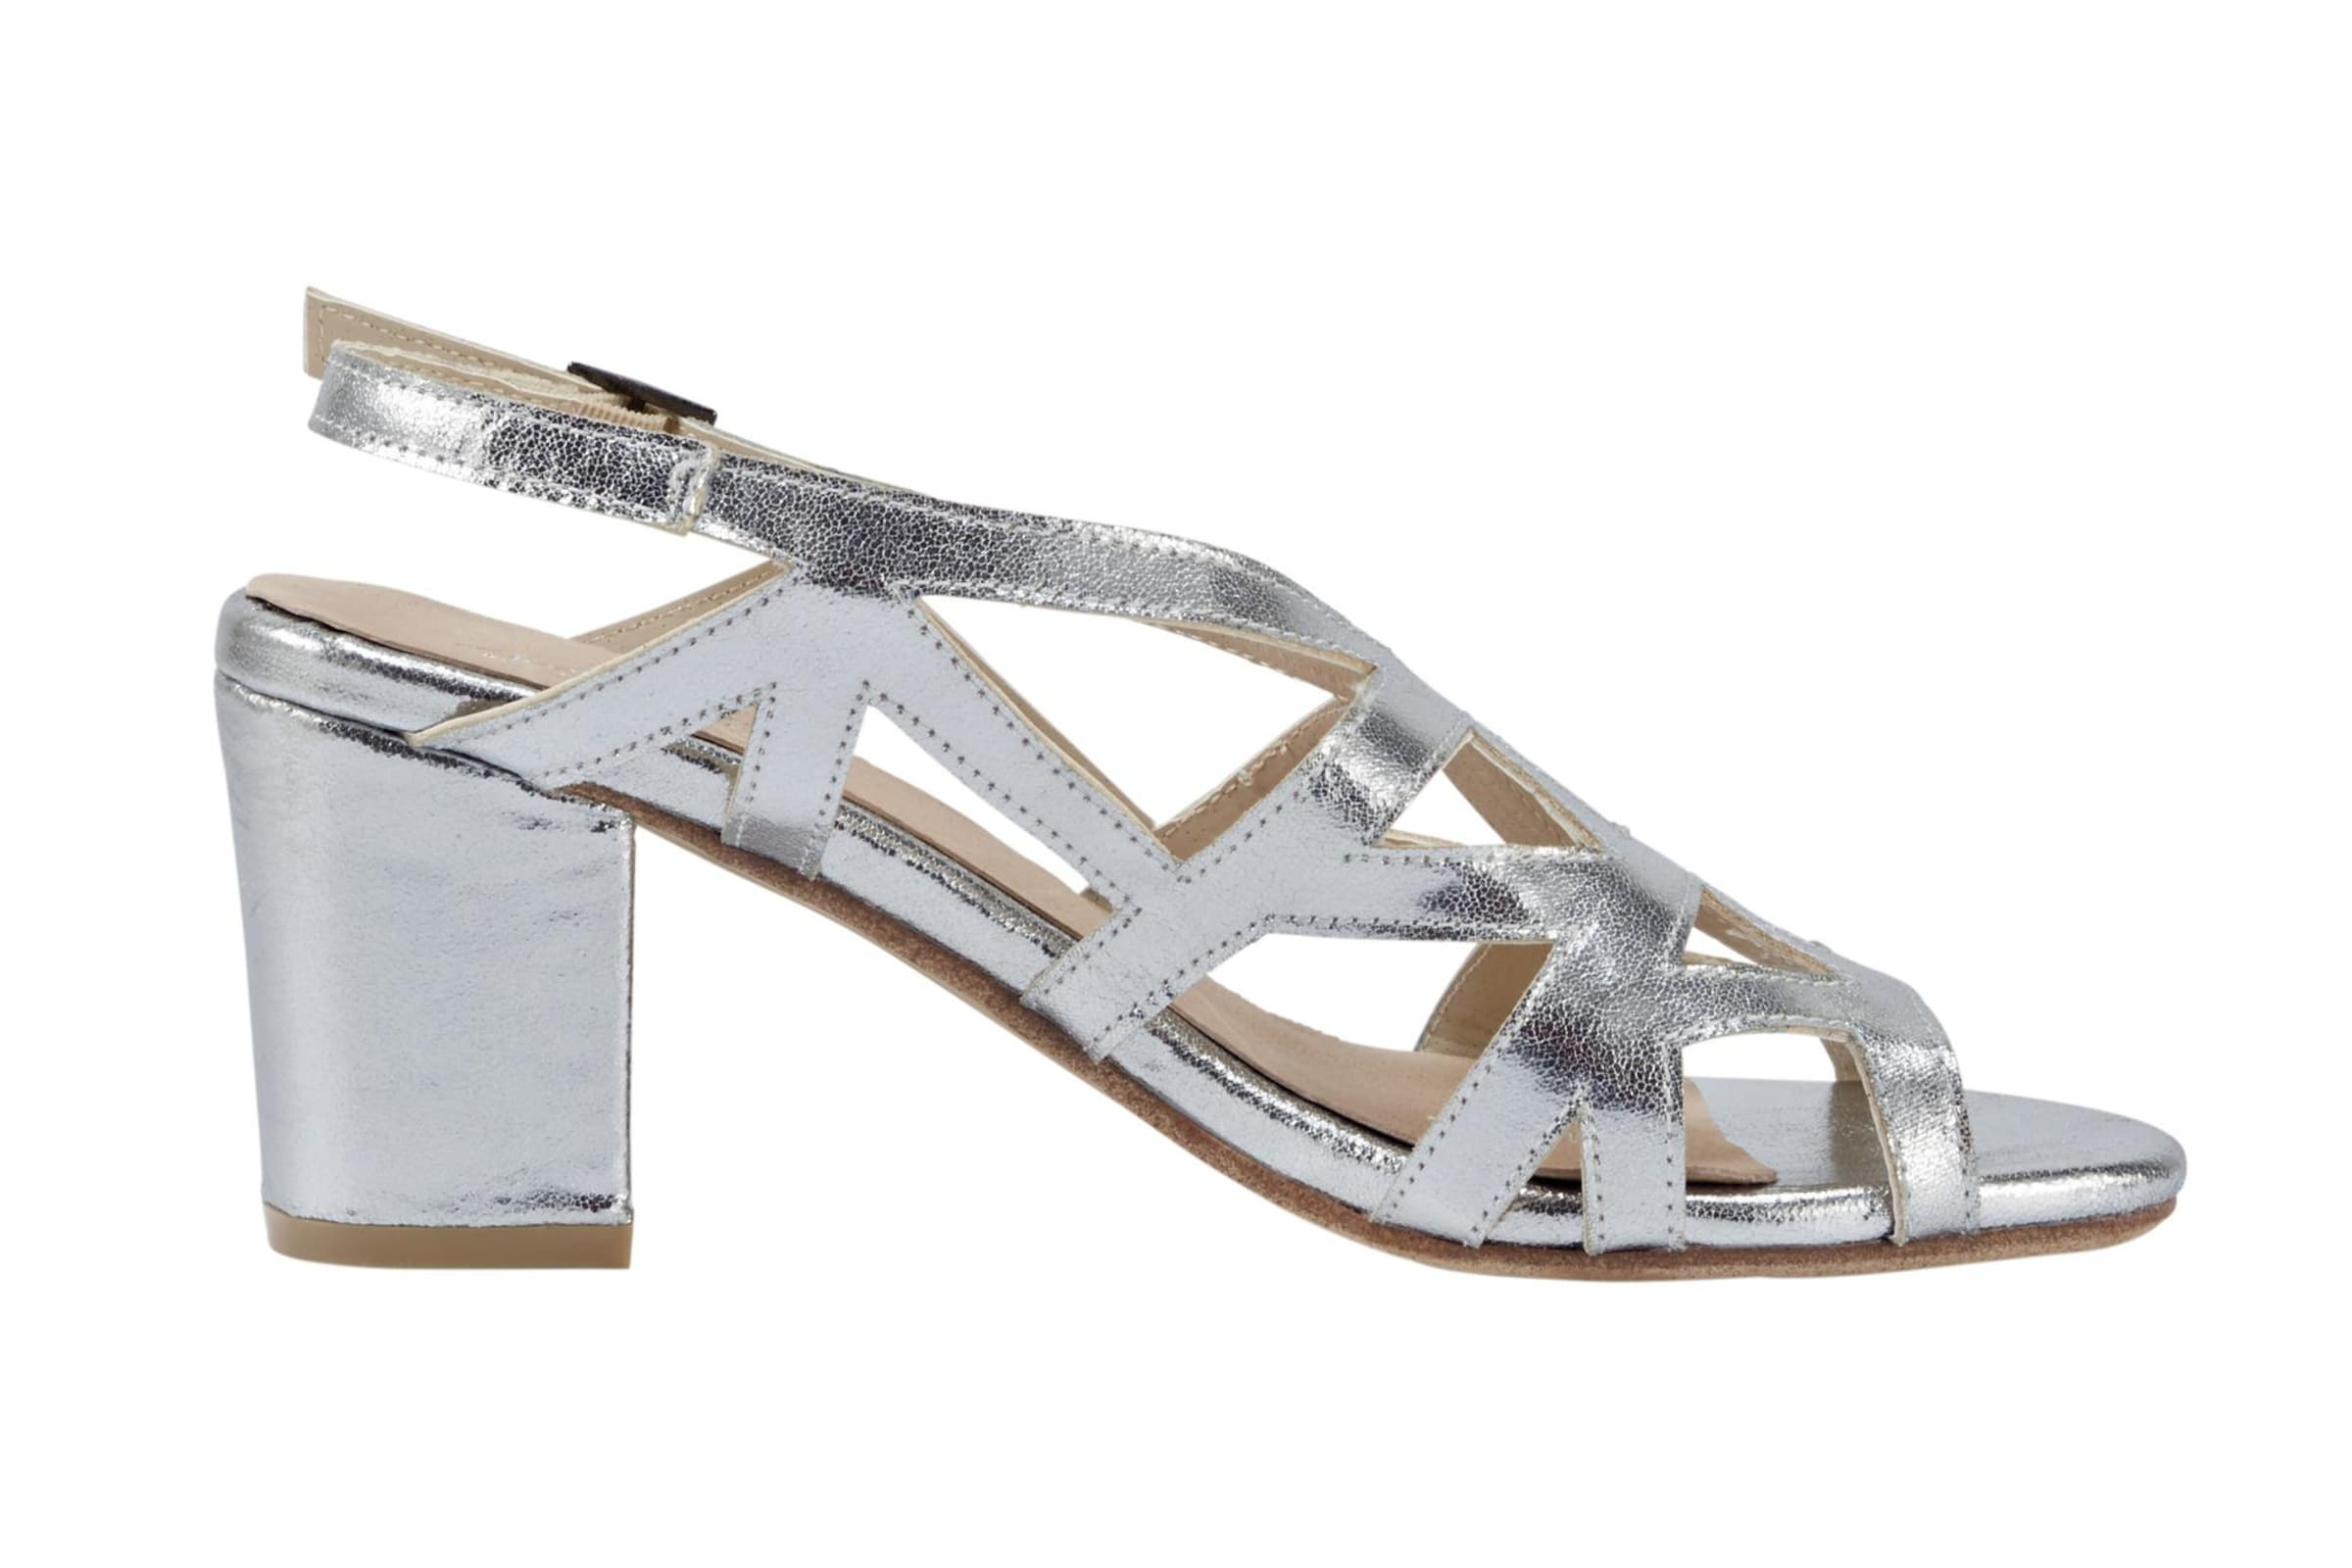 Sandalette In Silber Andrea Conti Ygfy76vb